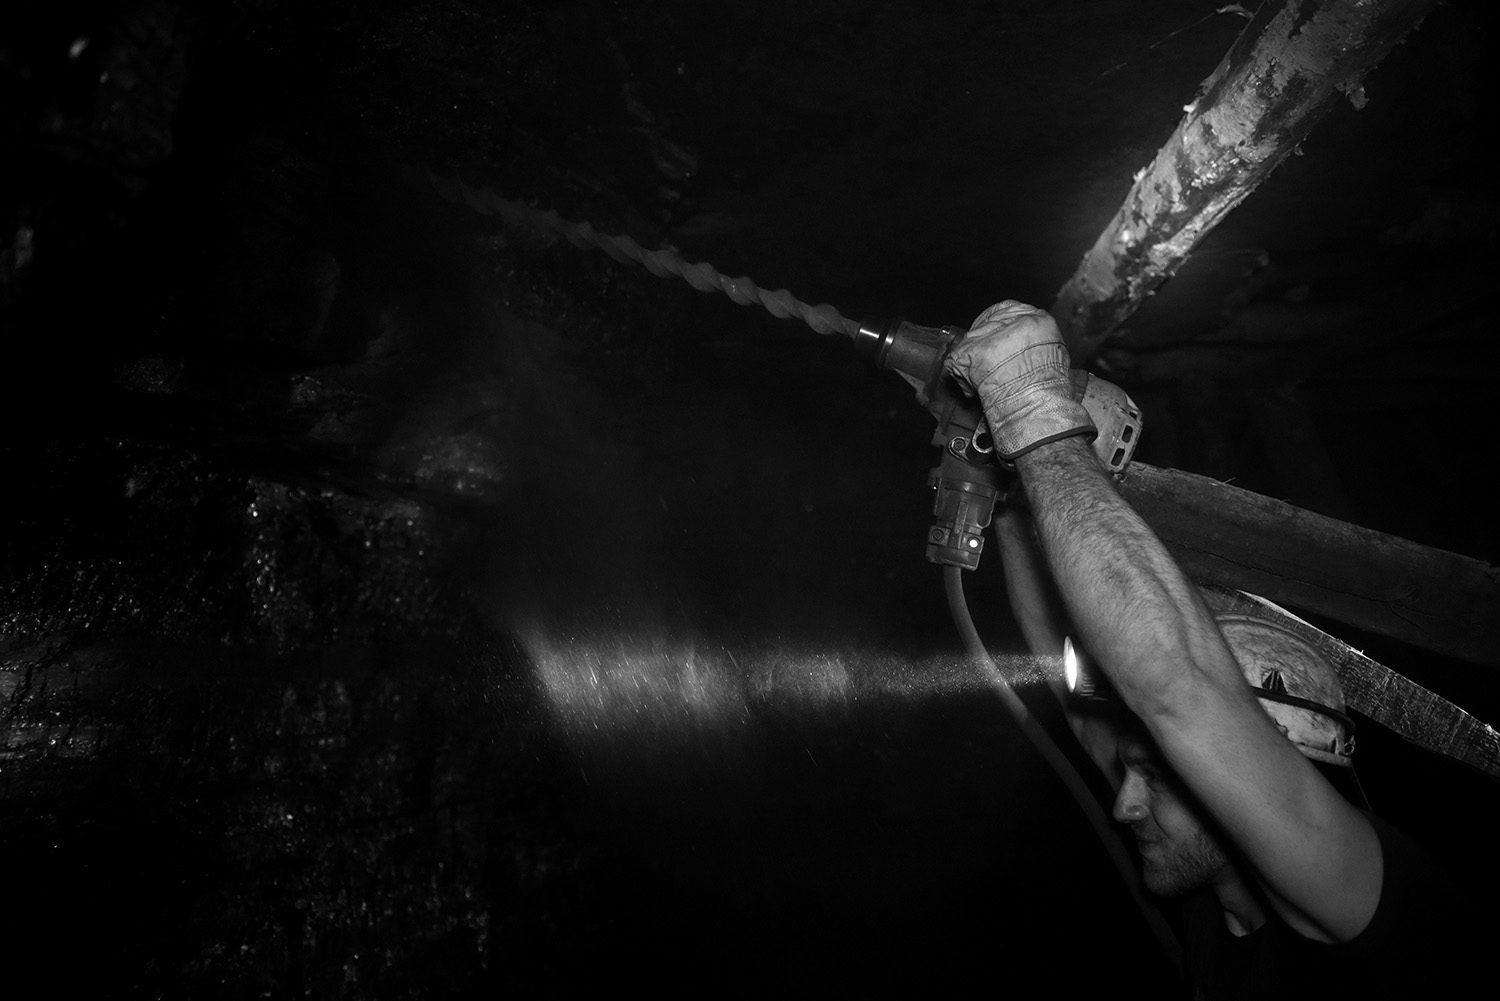 Adil Muhic drilled holes in which he will put the dynamite, by blasting will be conducted excavation of coall. He started working in the coal mine when he was nineteen years old. He is from Breza, his father and grandfather were also miners. Almost three years he works in a coal mine.